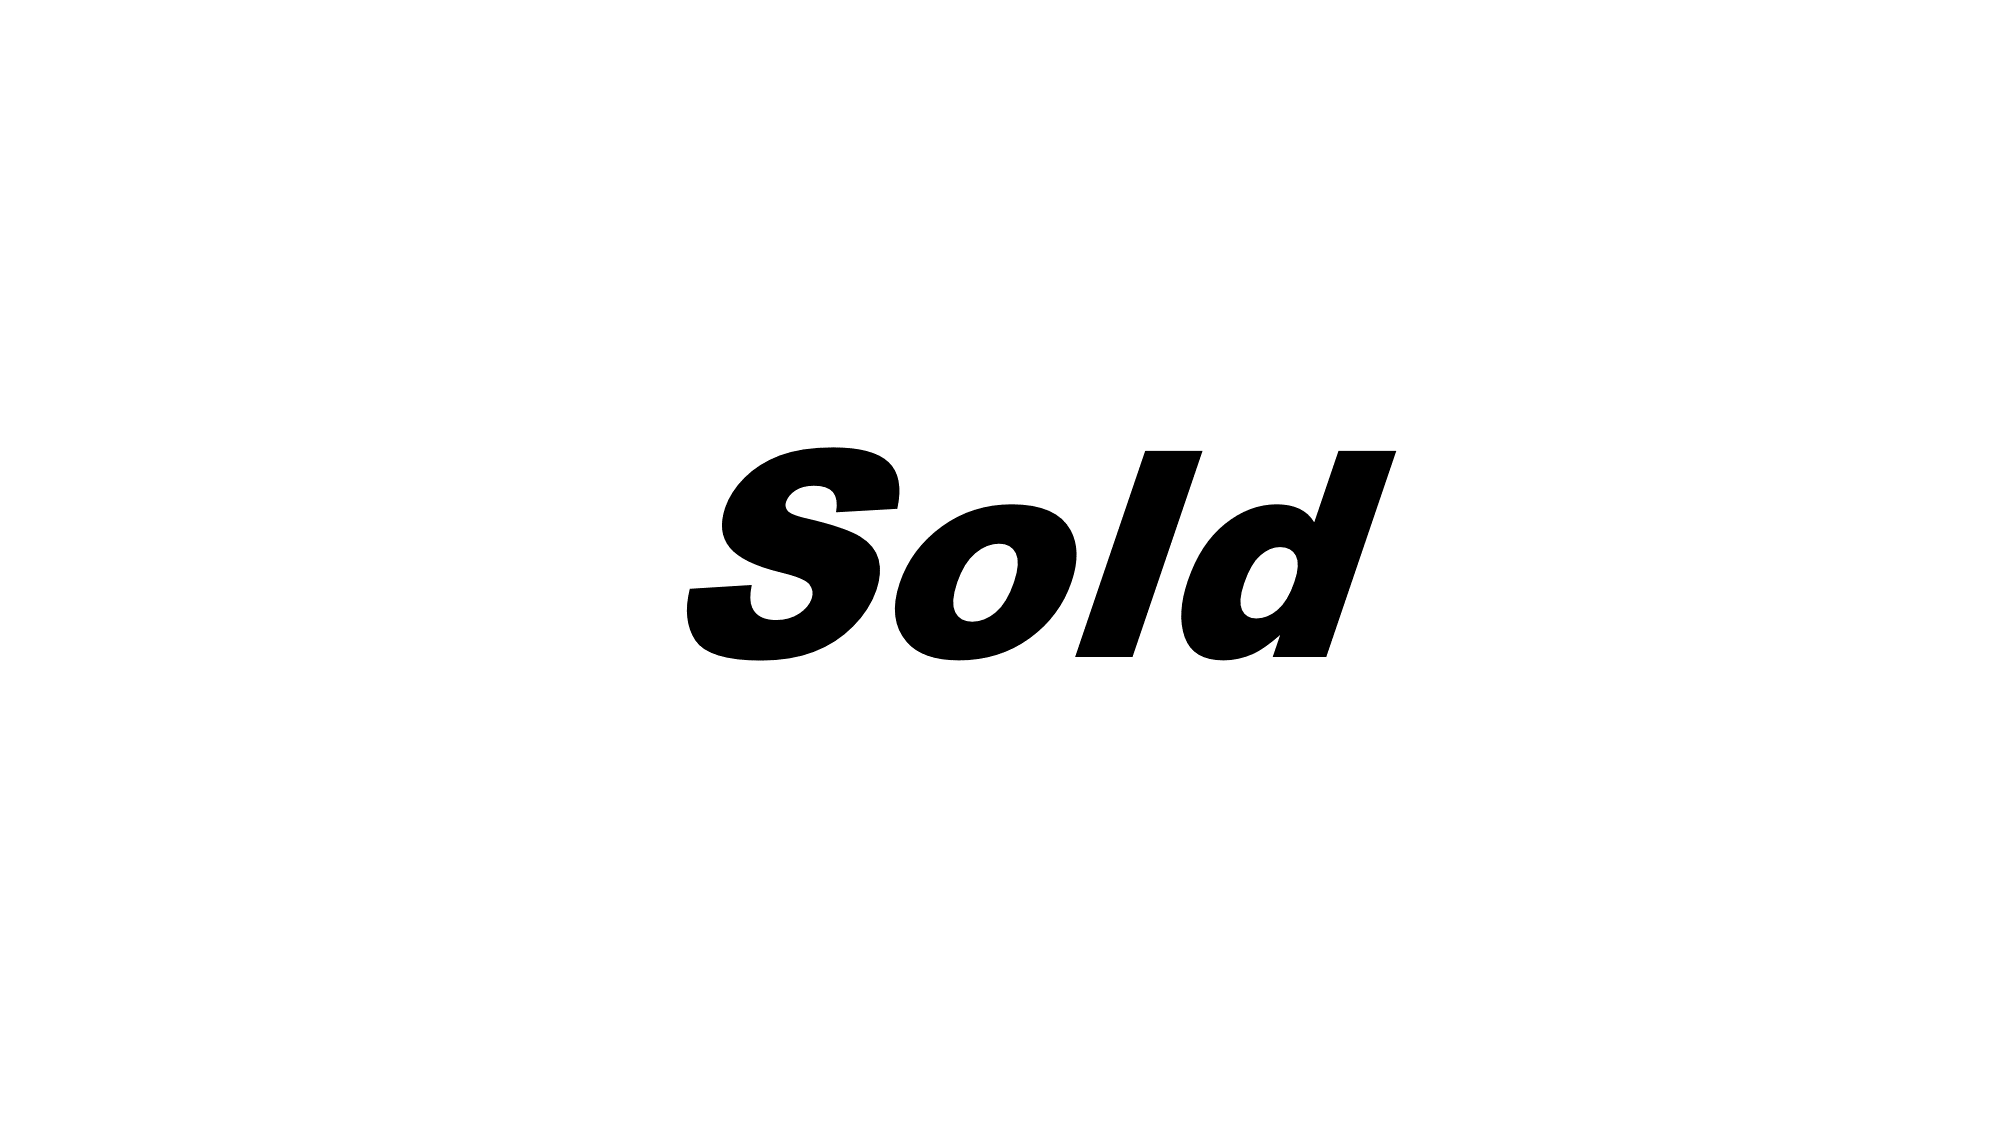 Sold 1